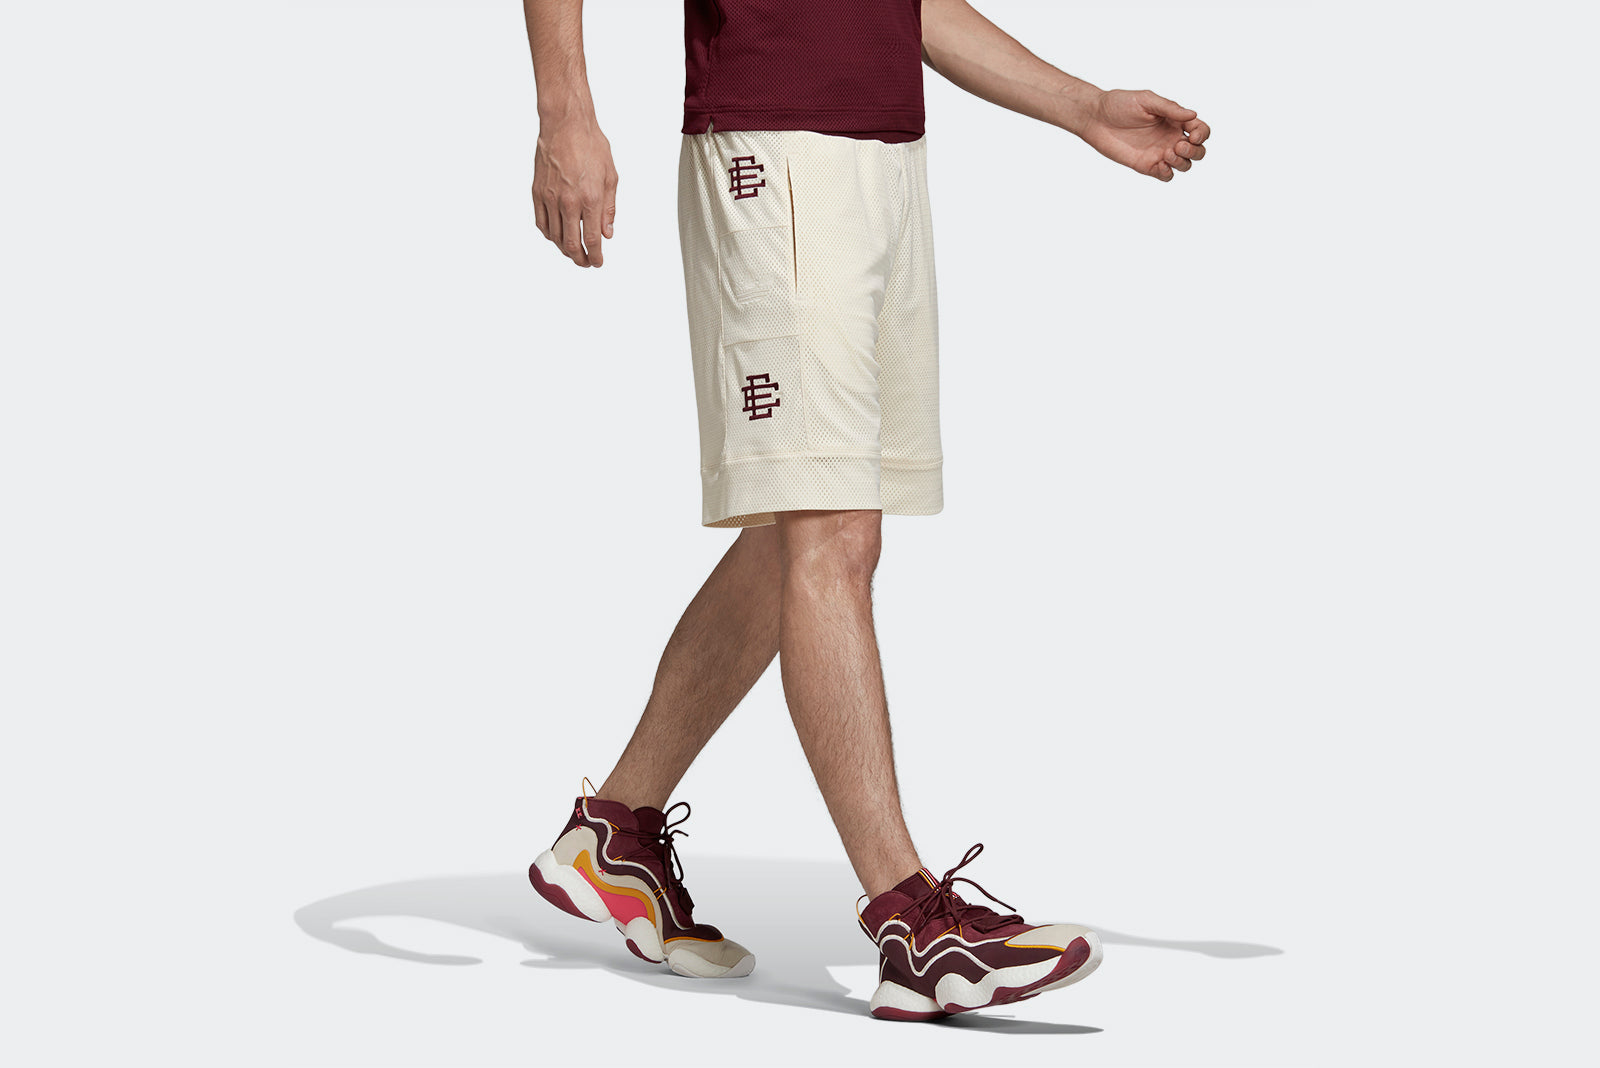 the best attitude 268b7 4c478 adidas Originals Heavy Shorts x Eric Emanuel DP2213 WhiteMaroonCraft Gold  Price £75.00. Launch Friday 6th of December ONLINE 2300GMT